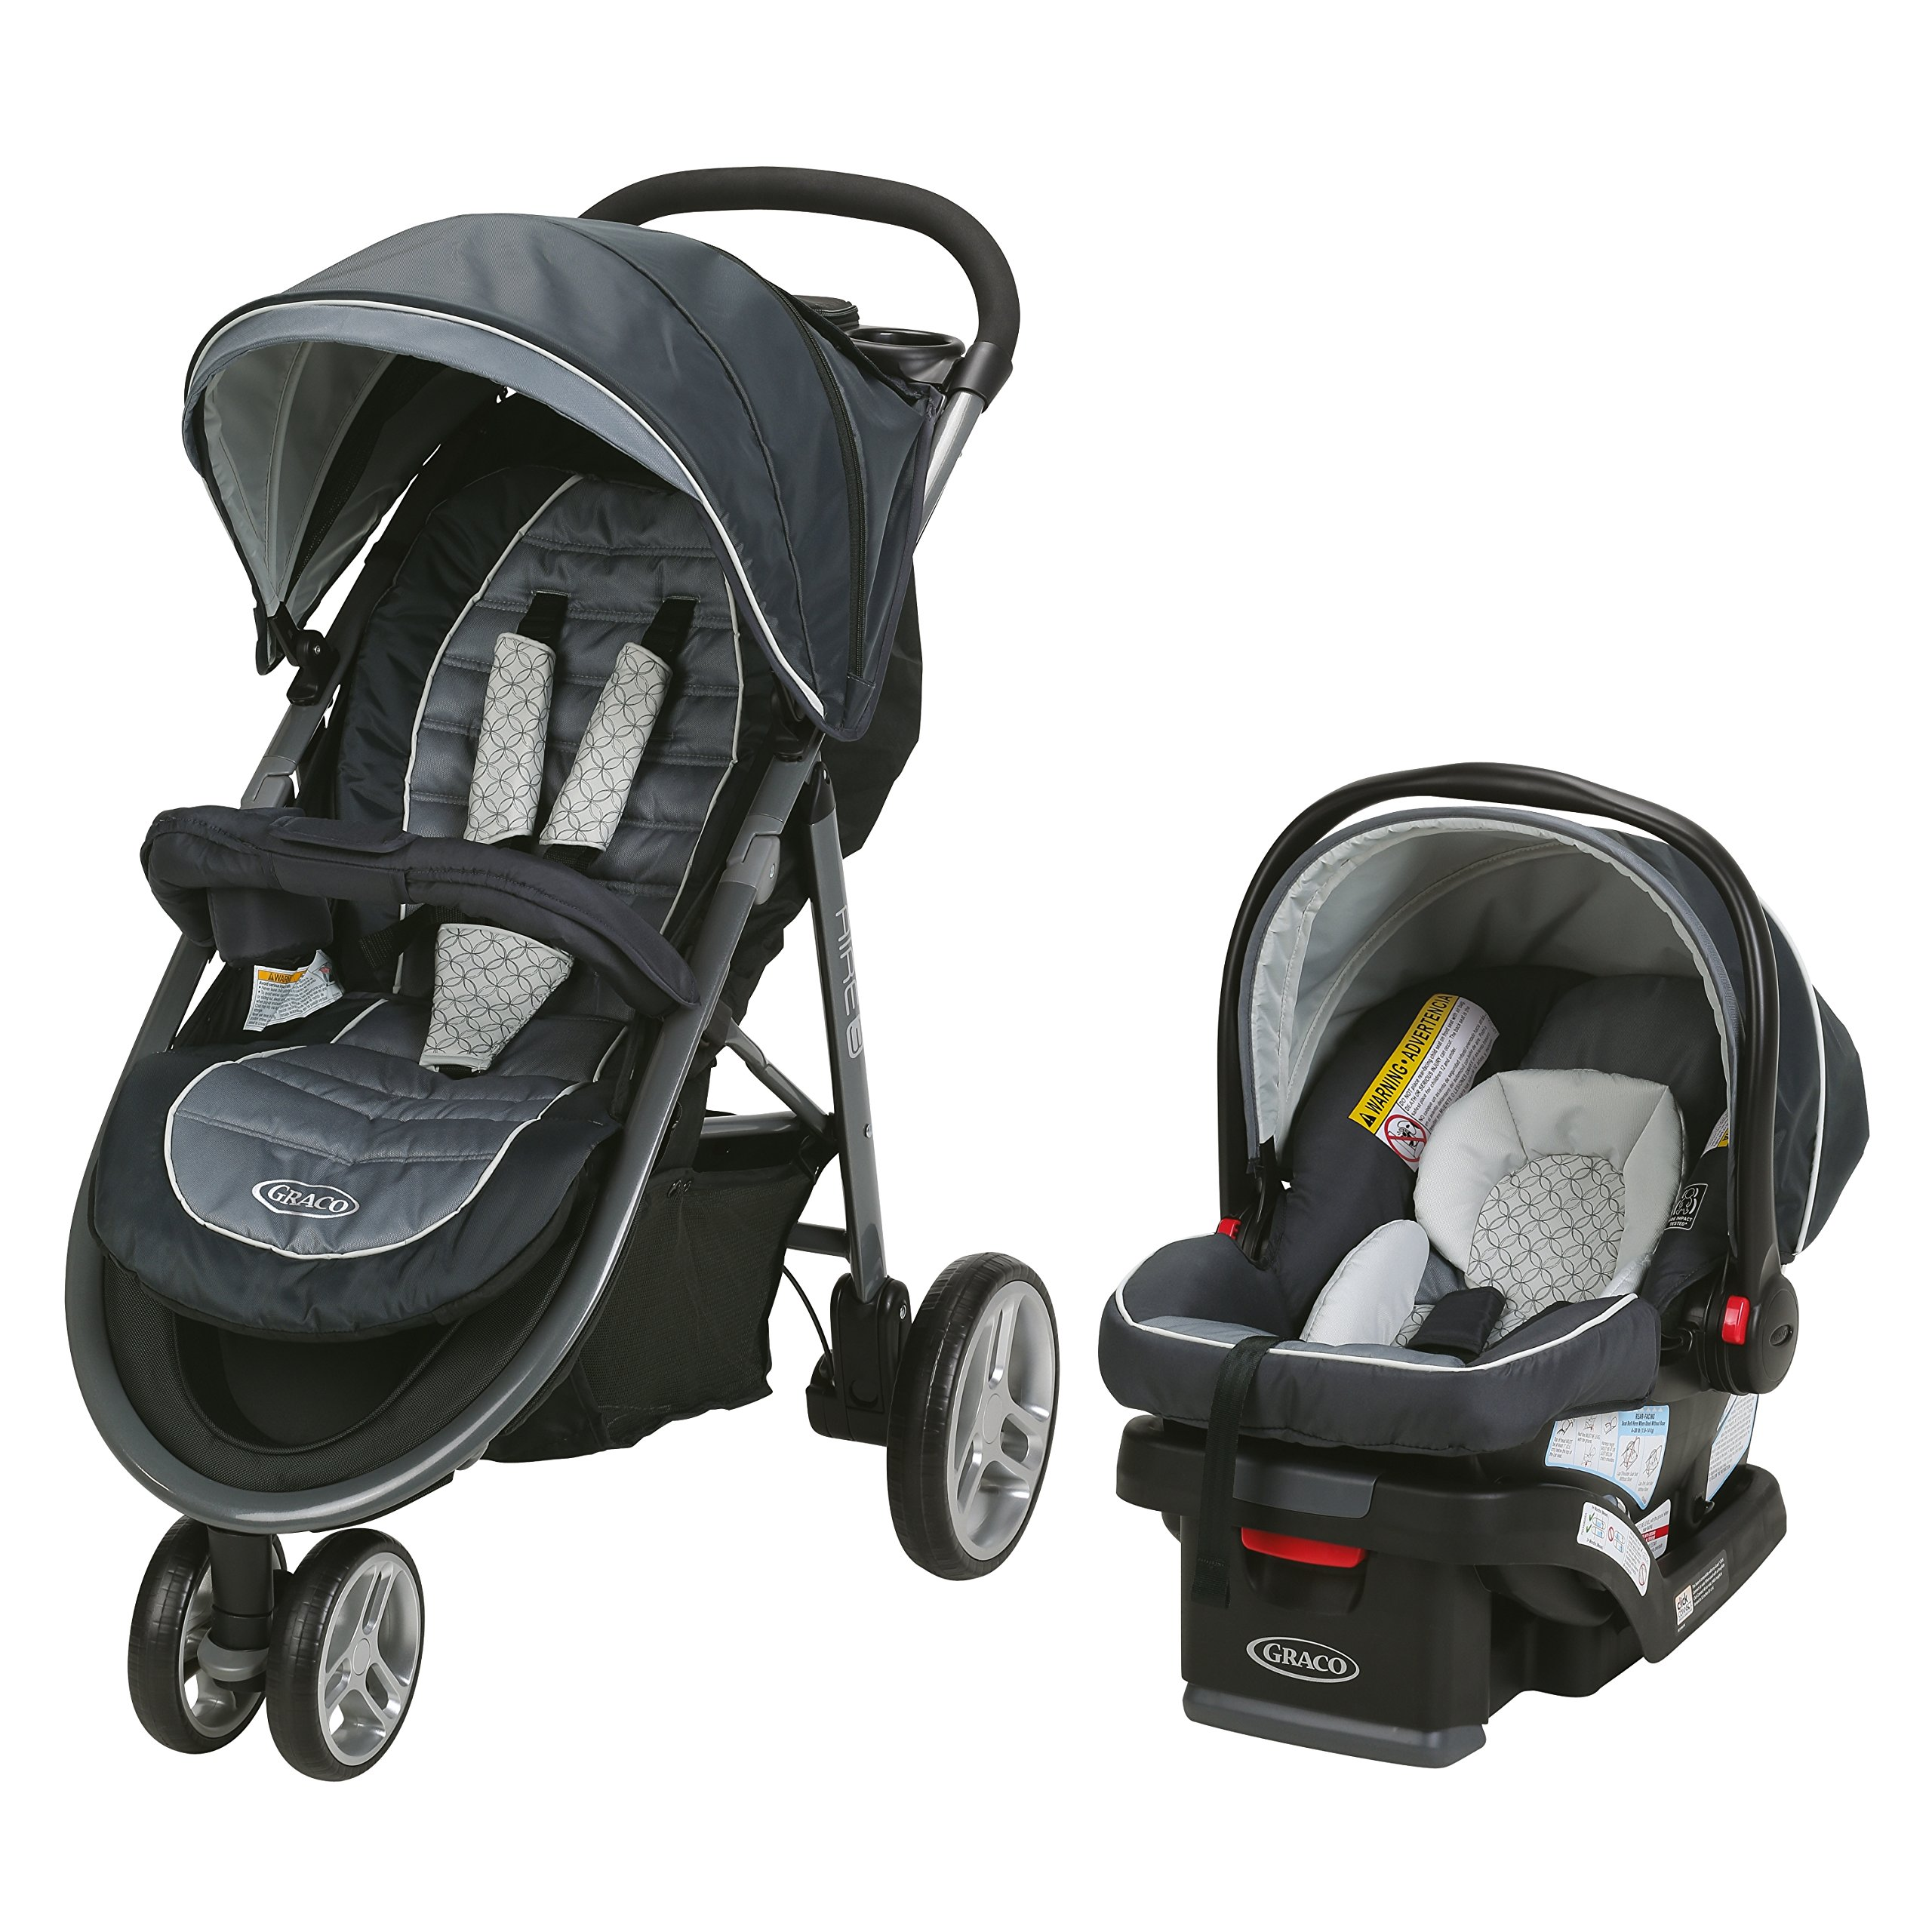 Graco Aire3 Travel System Stroller, McKinley